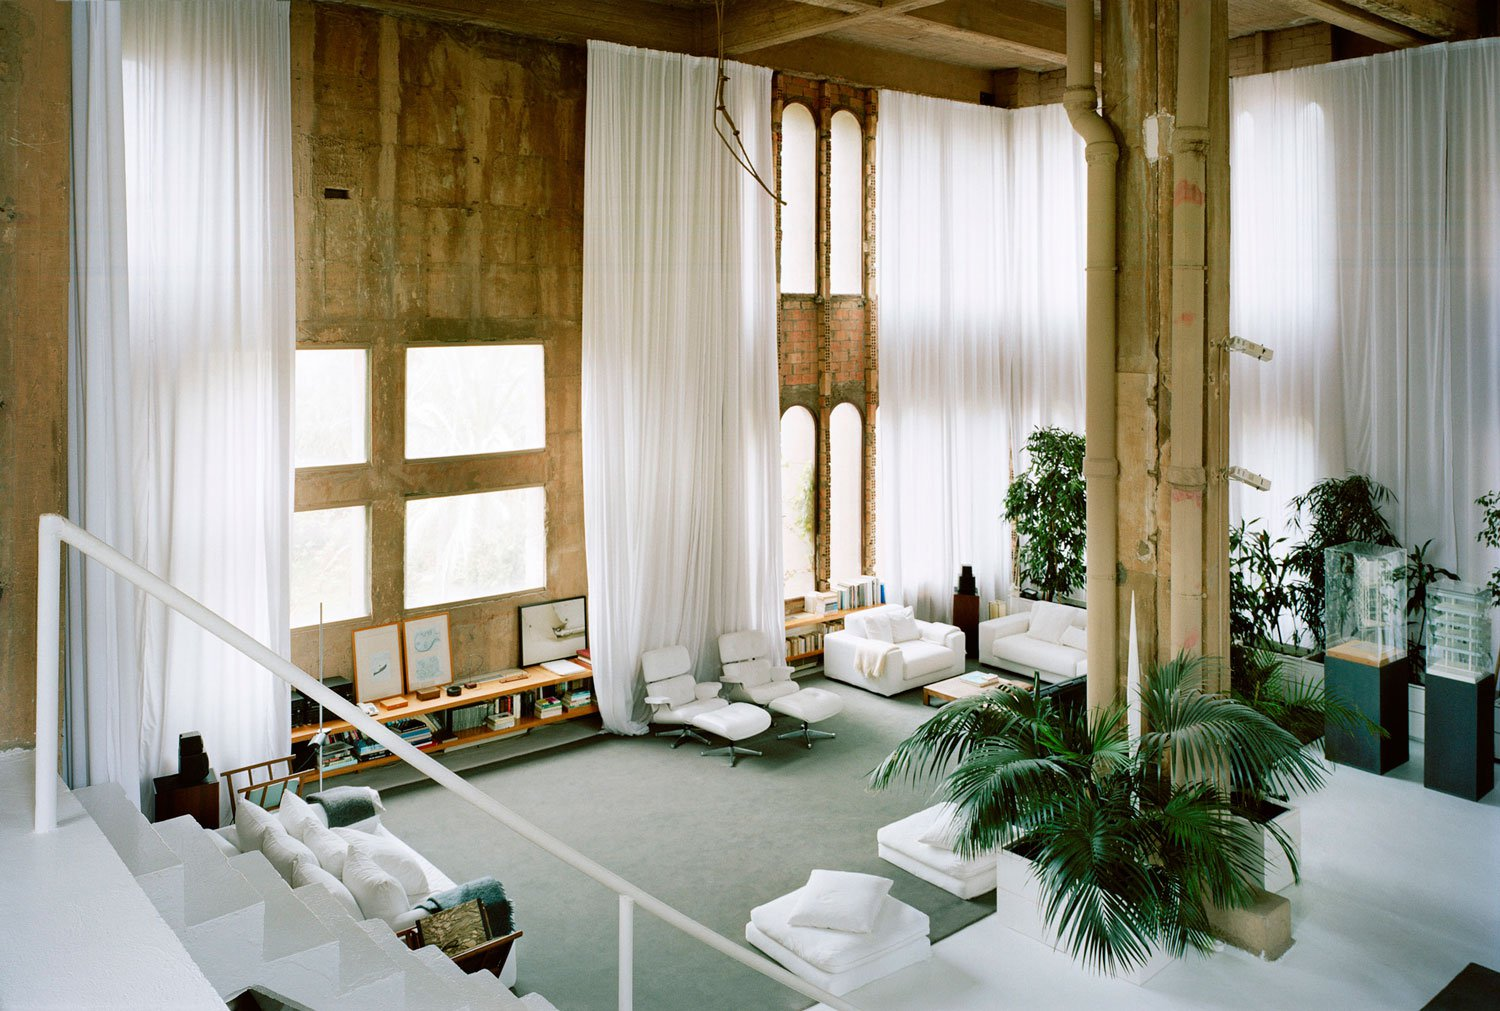 The Factory by Ricardo Bofill and Taller de Arquitectura